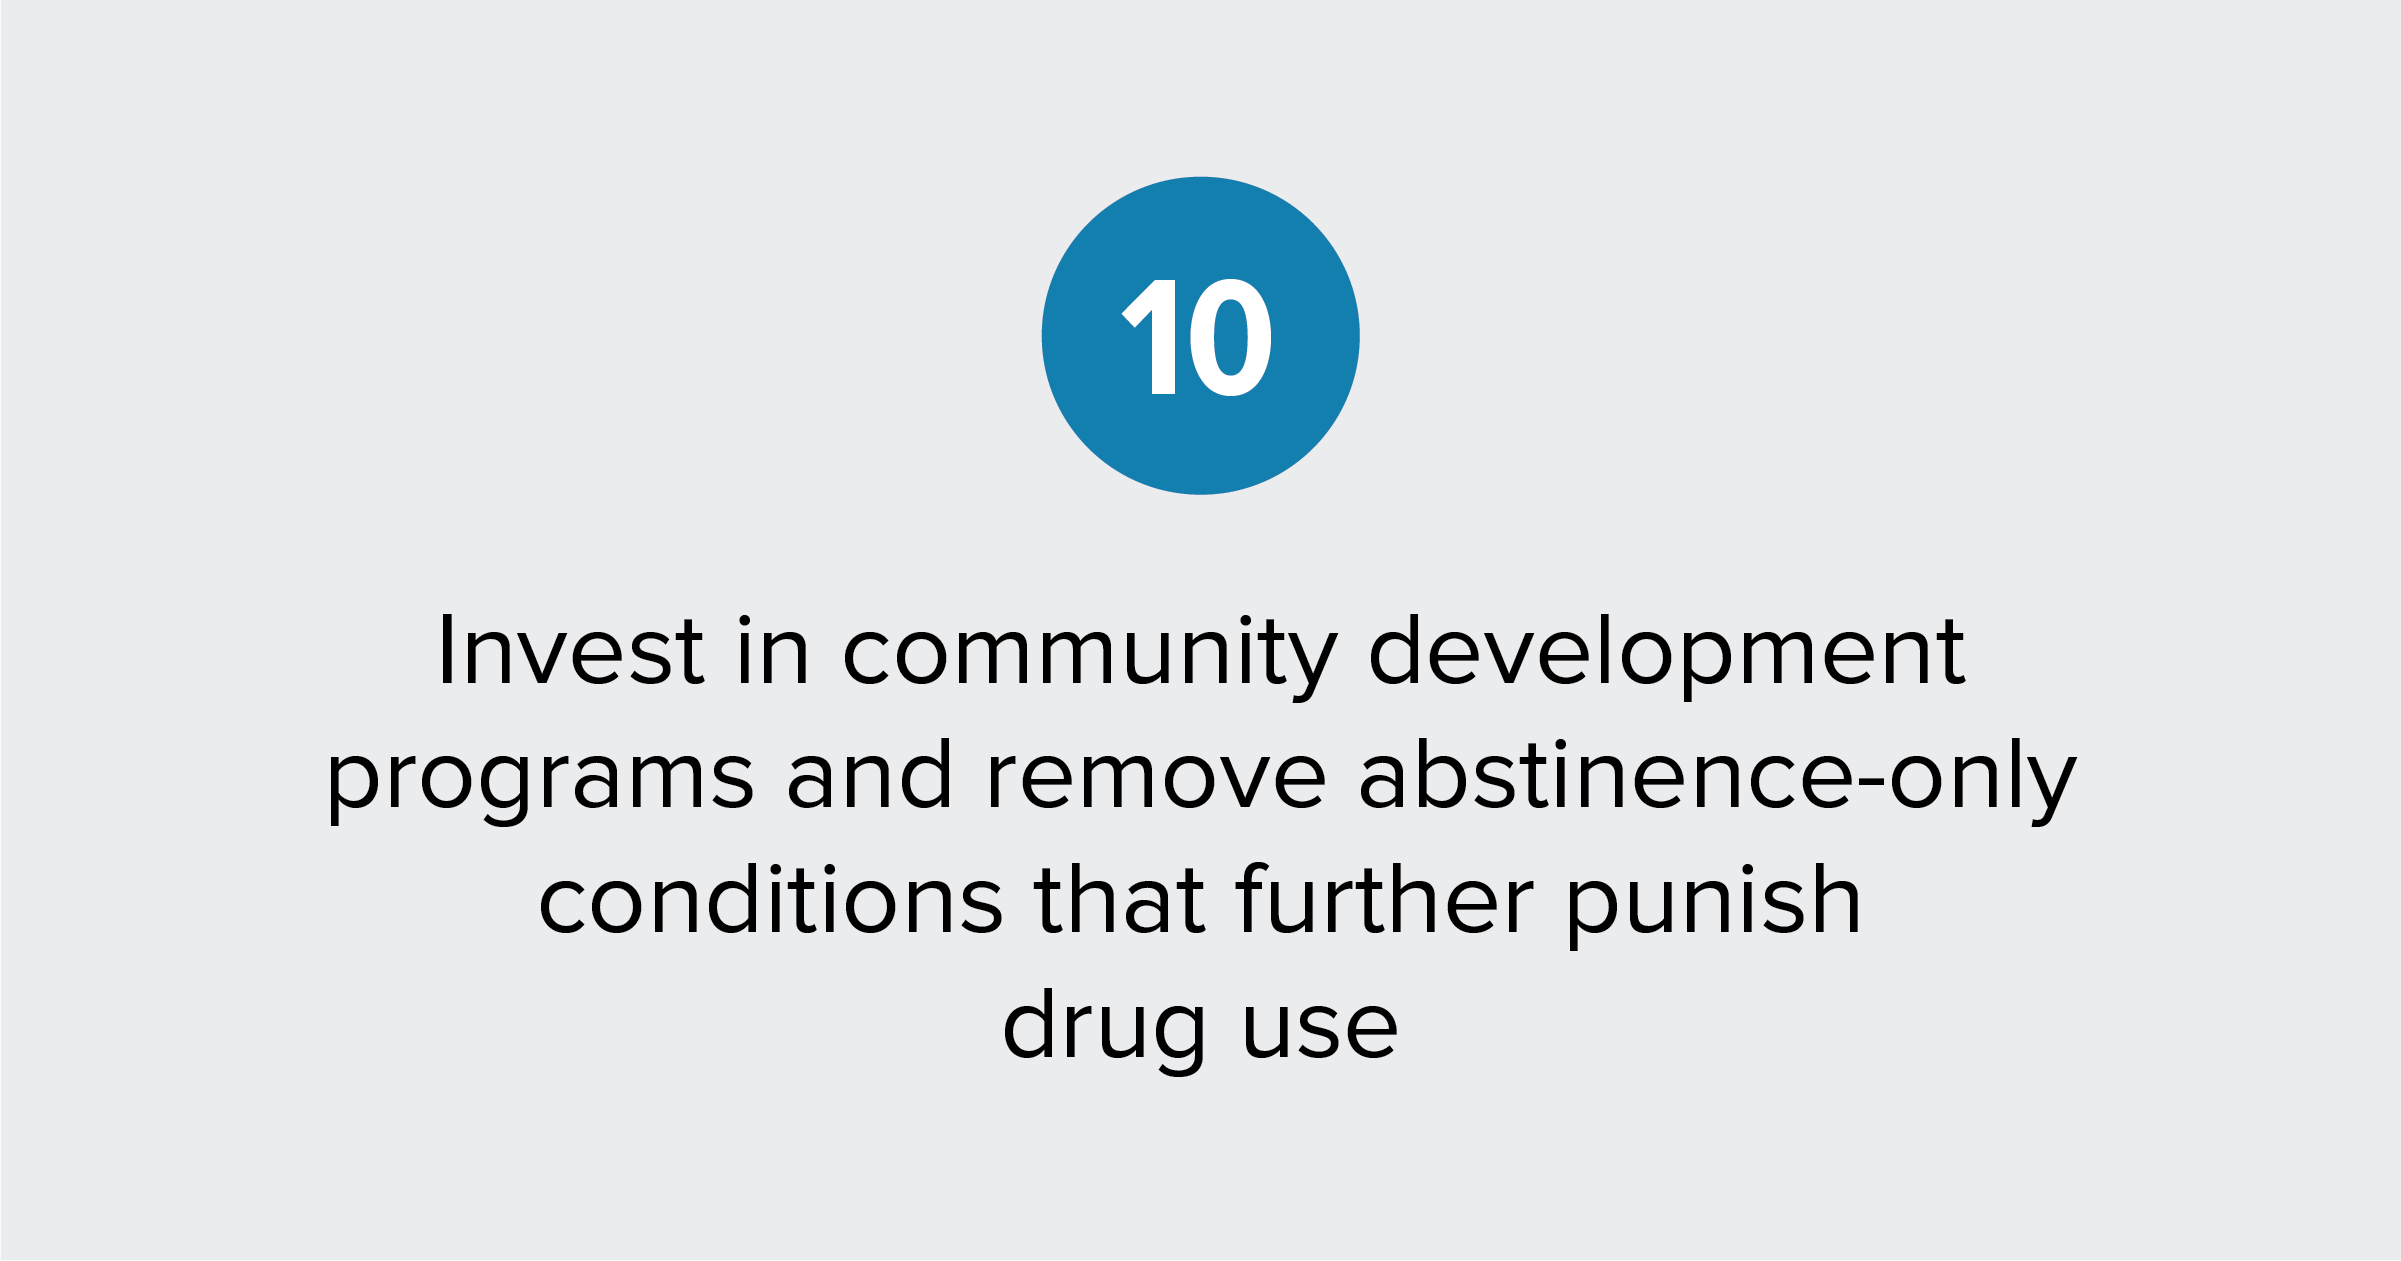 Text of report recommendation 10: Invest in community development programs and remove abstinence-only conditions that further punish drug use